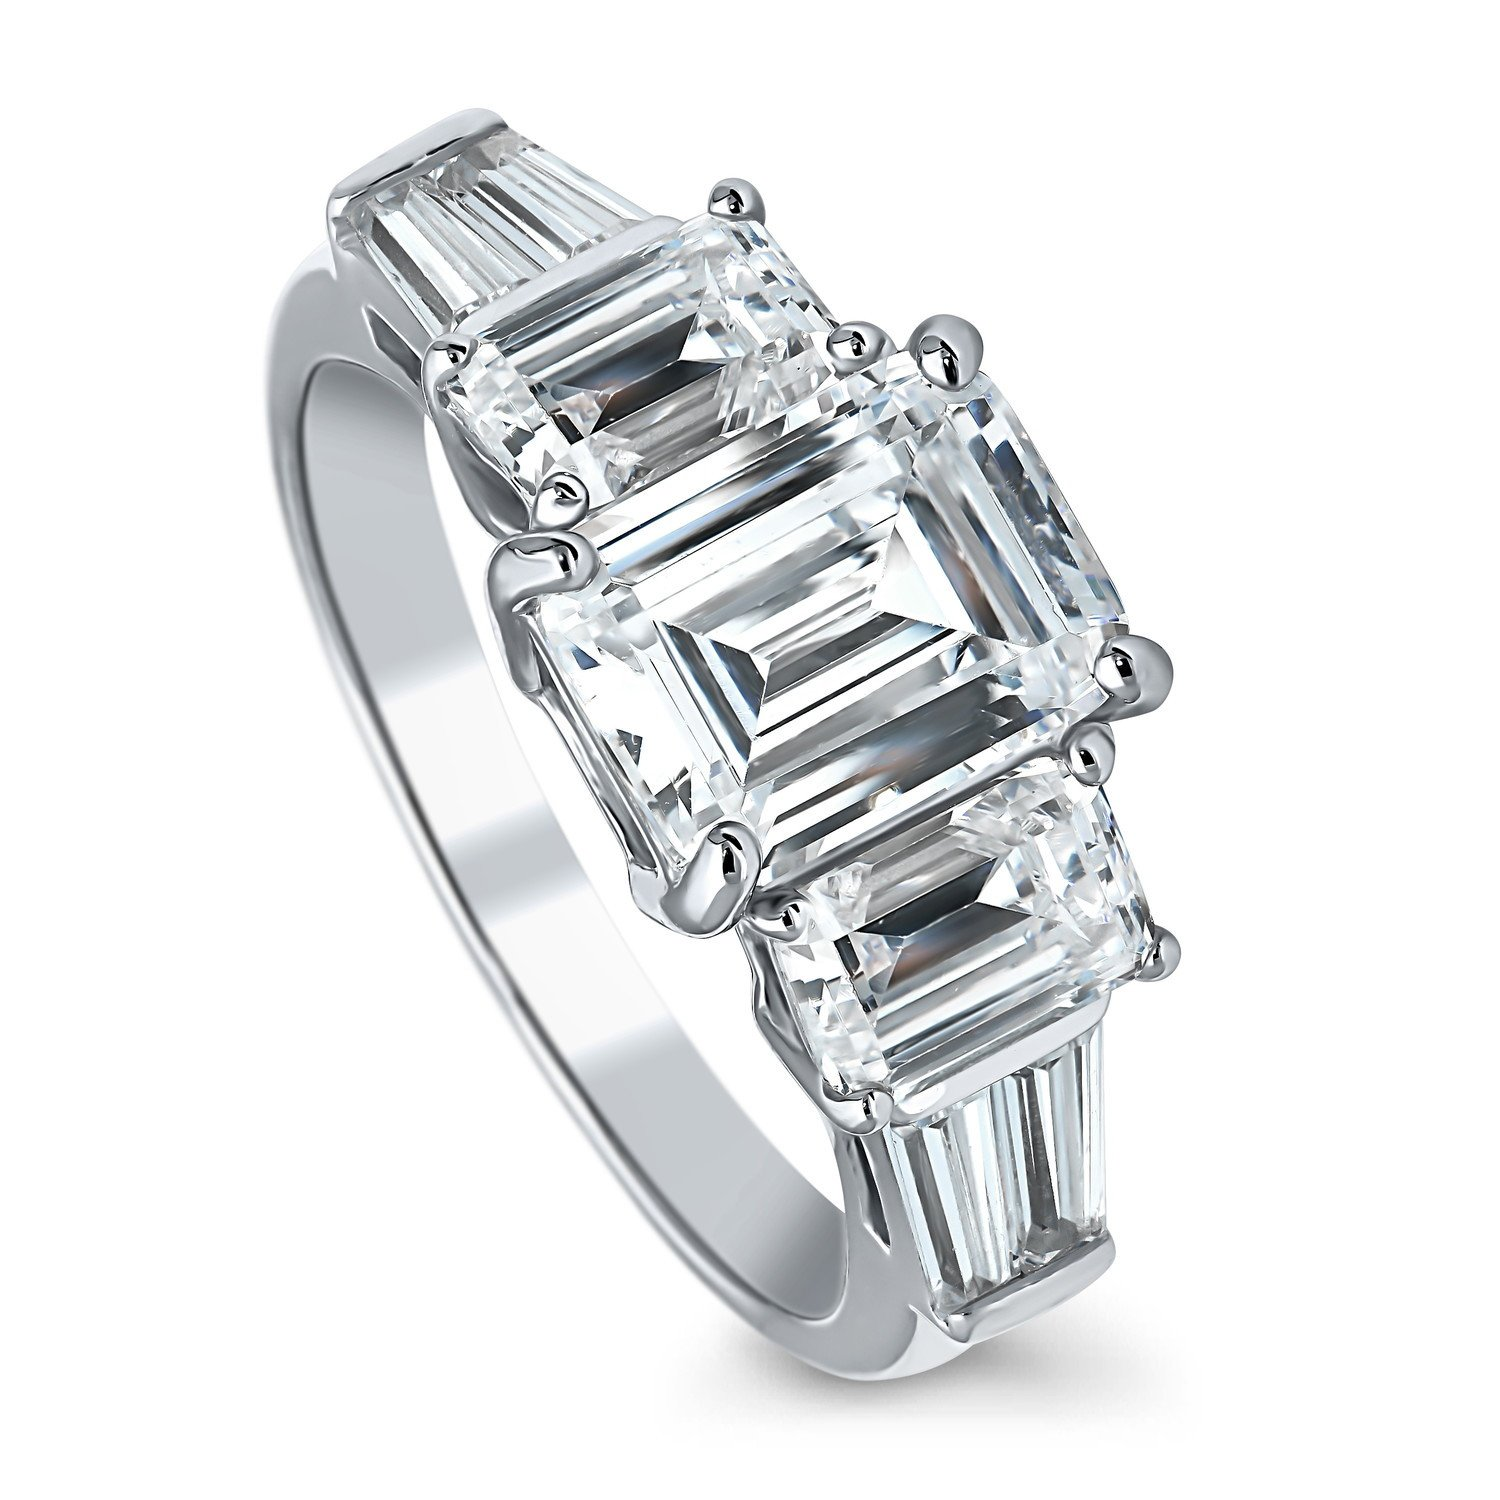 BERRICLE Rhodium Plated Silver Emerald Cut Cubic Zirconia CZ 3-Stone Engagement Ring 4.09 CTW Size 5